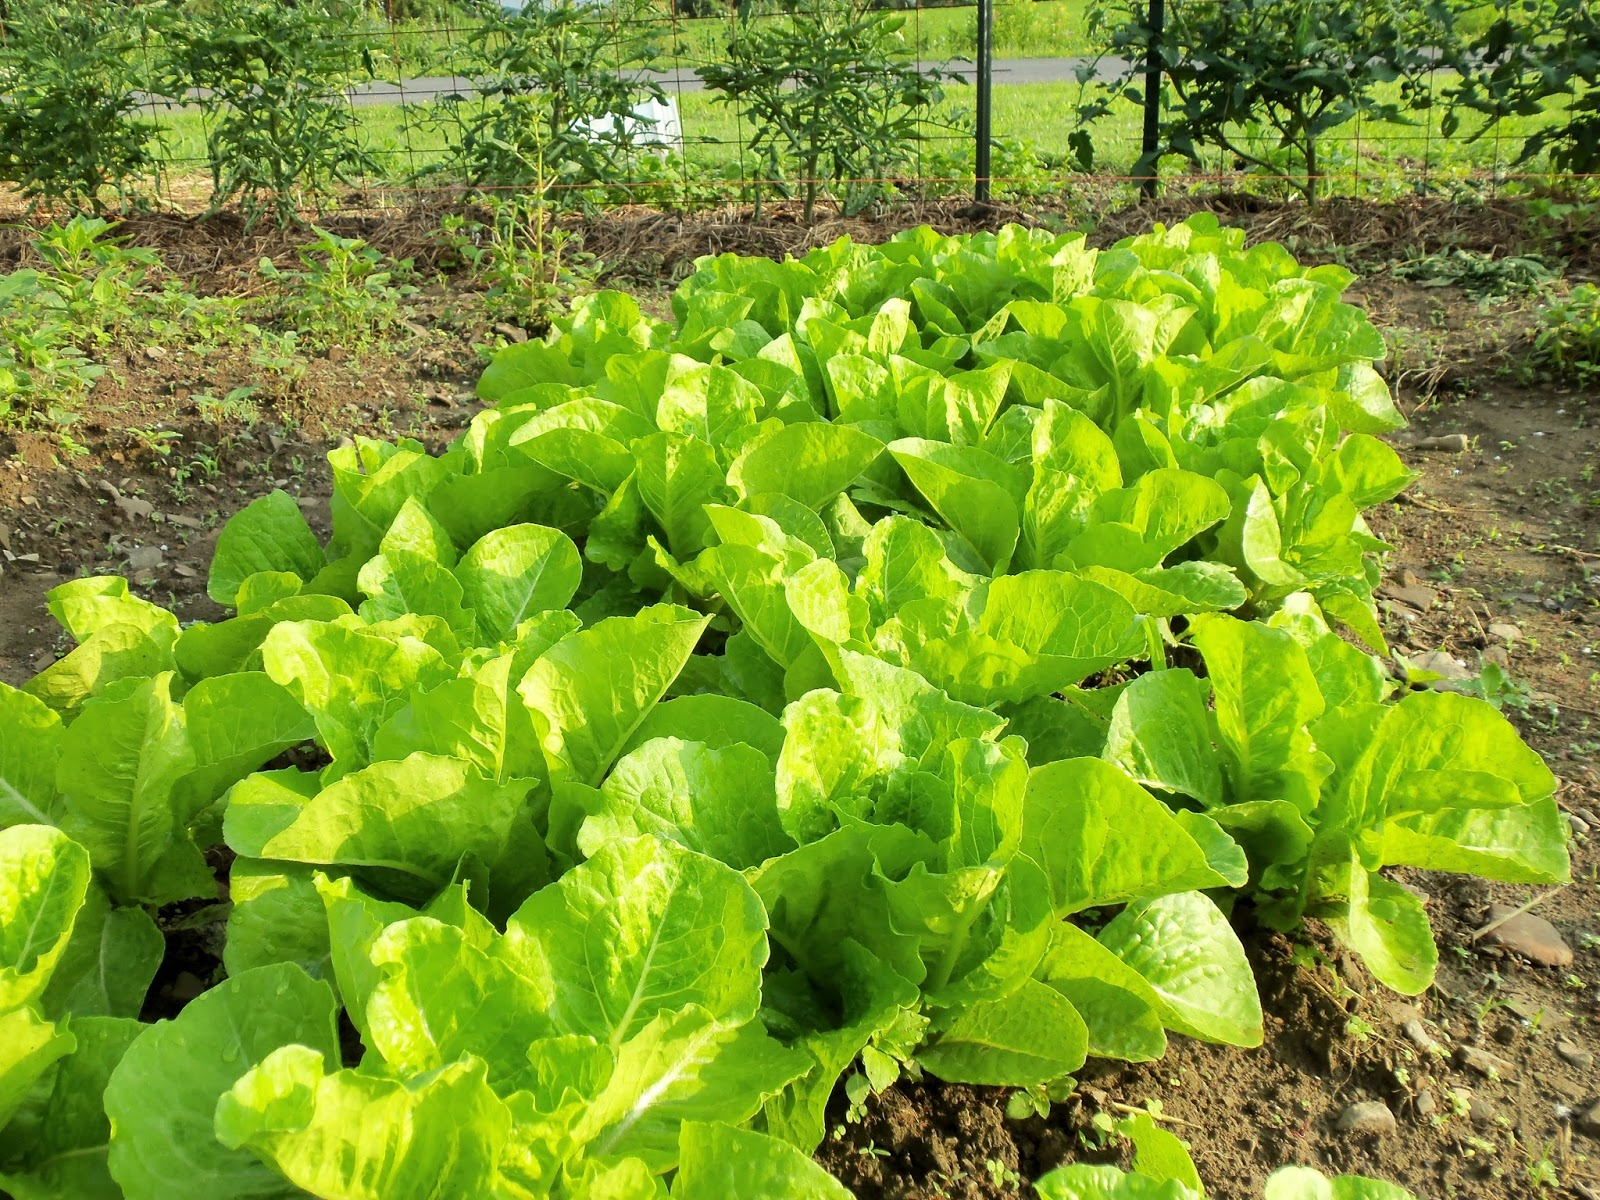 Romaine lettuce in my garden on Independence Day, 2013